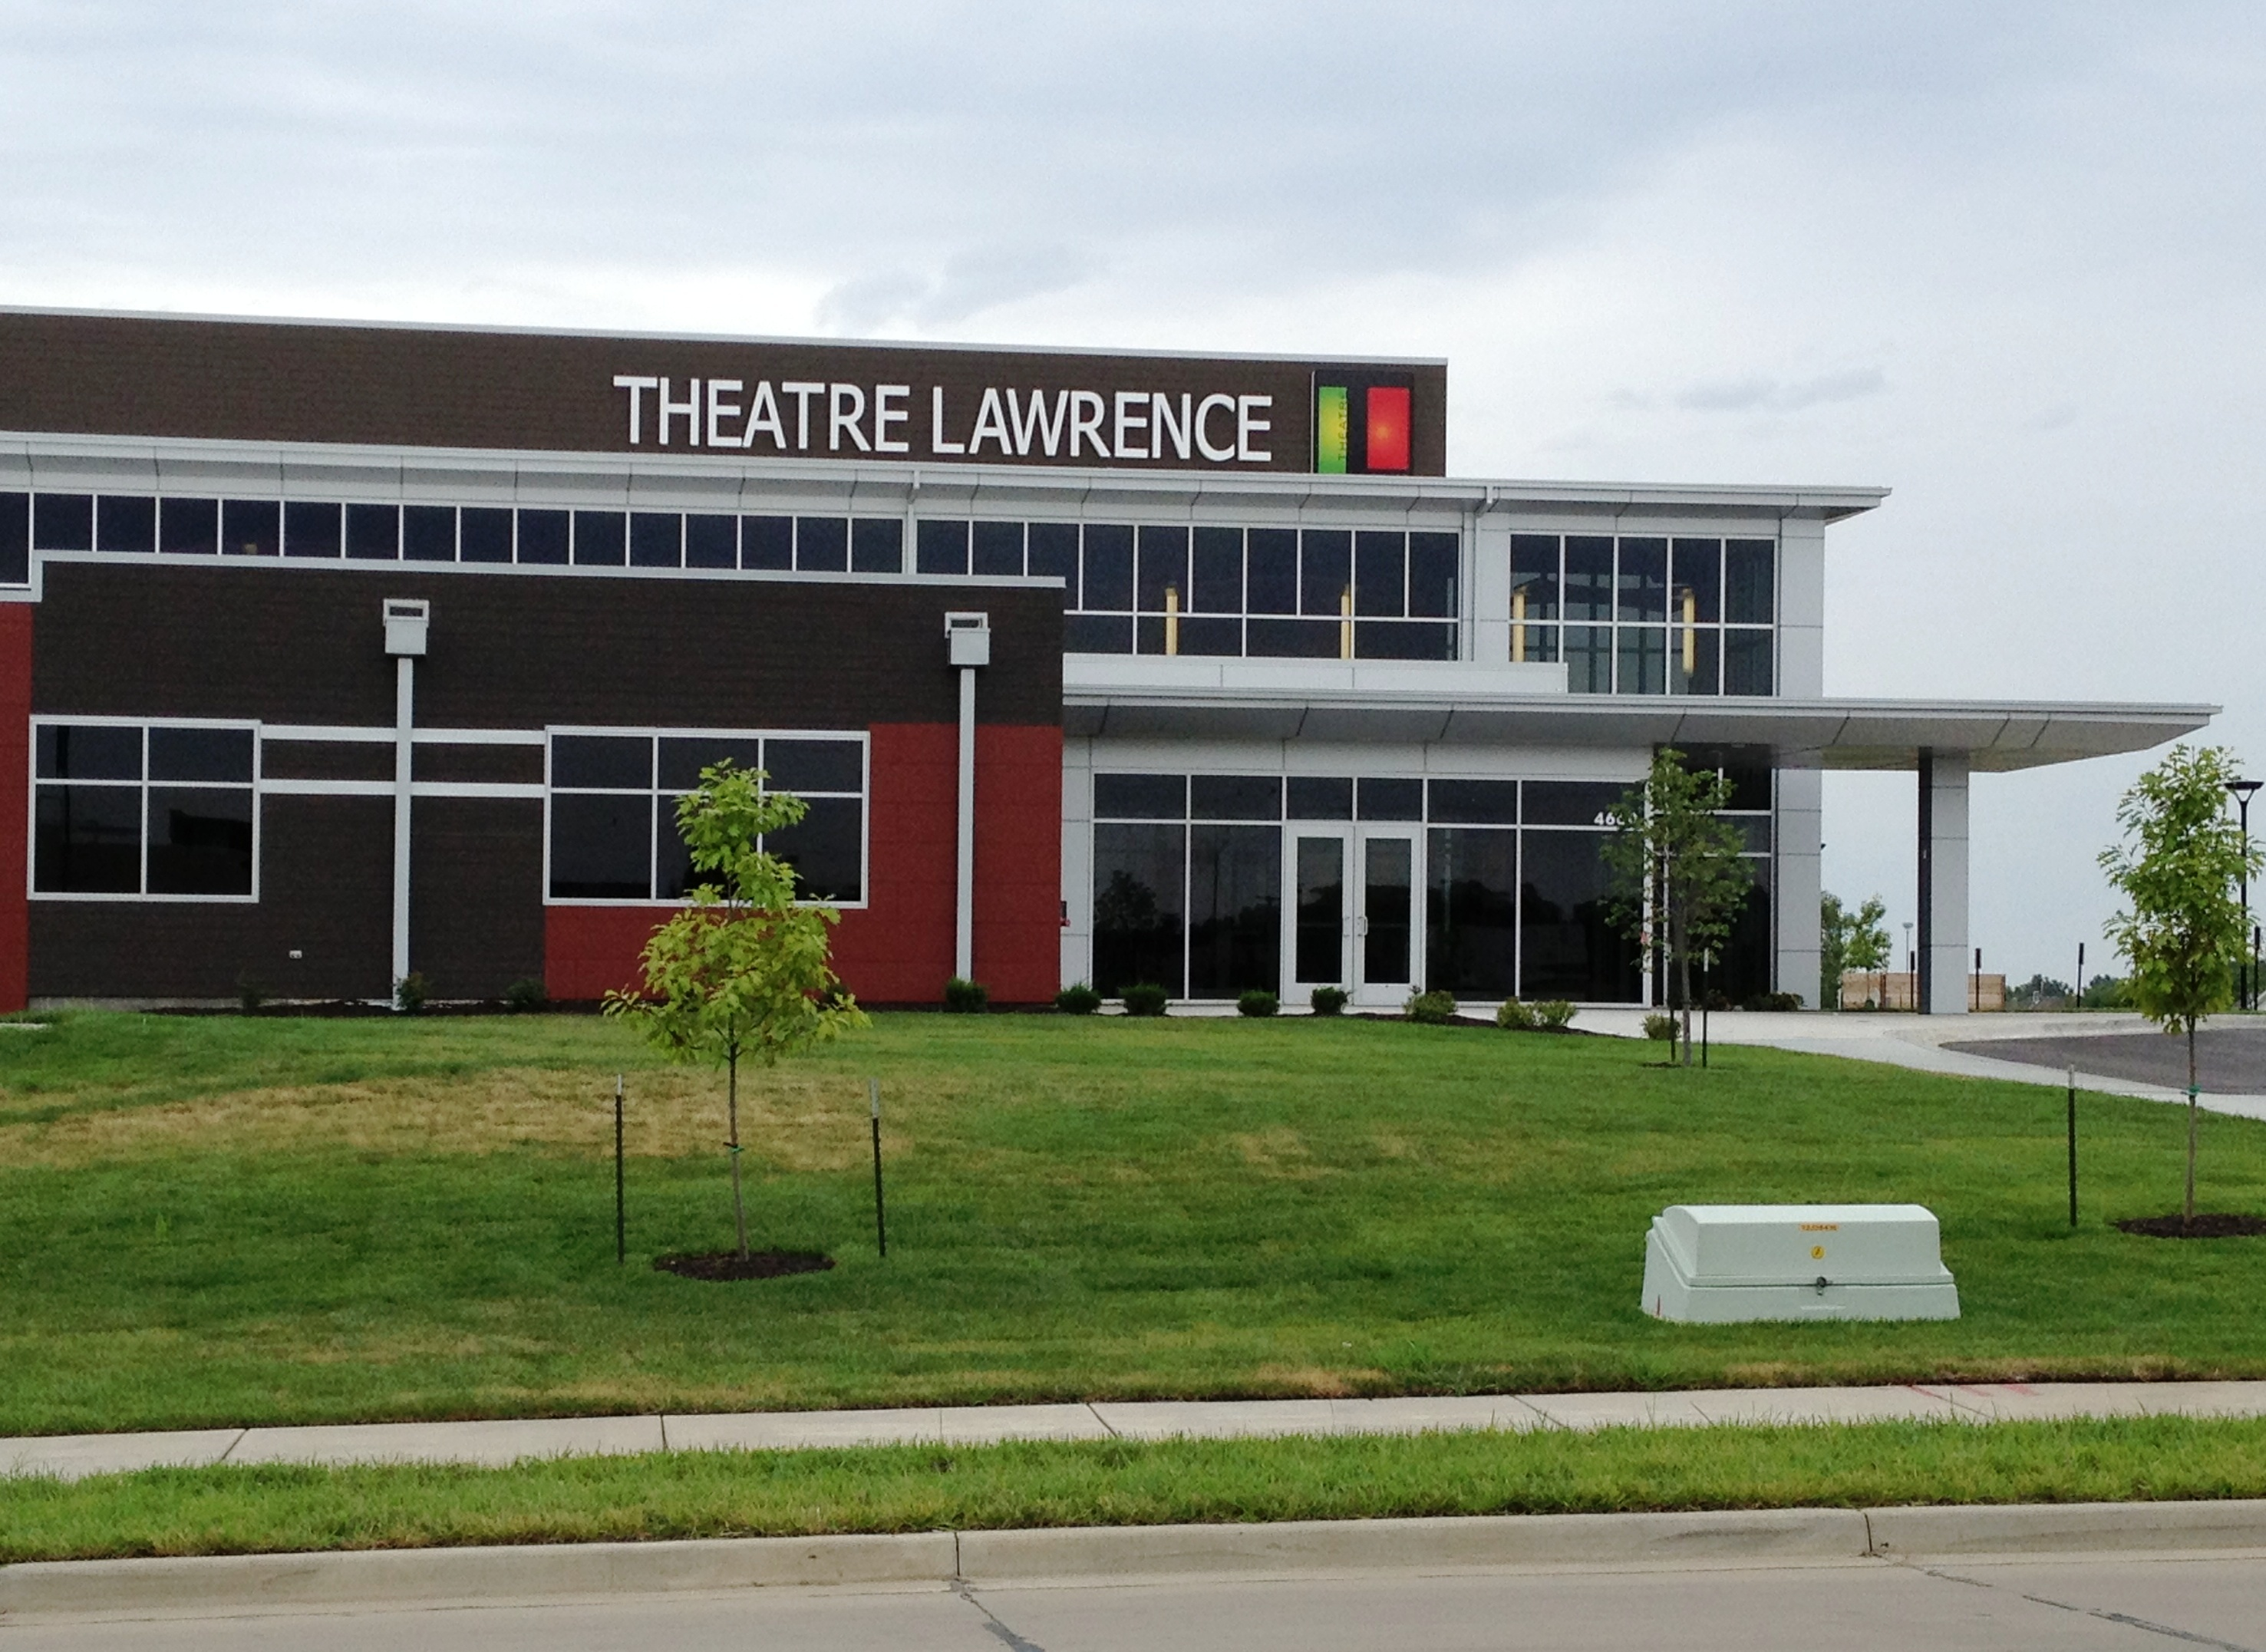 Theatre Lawrence